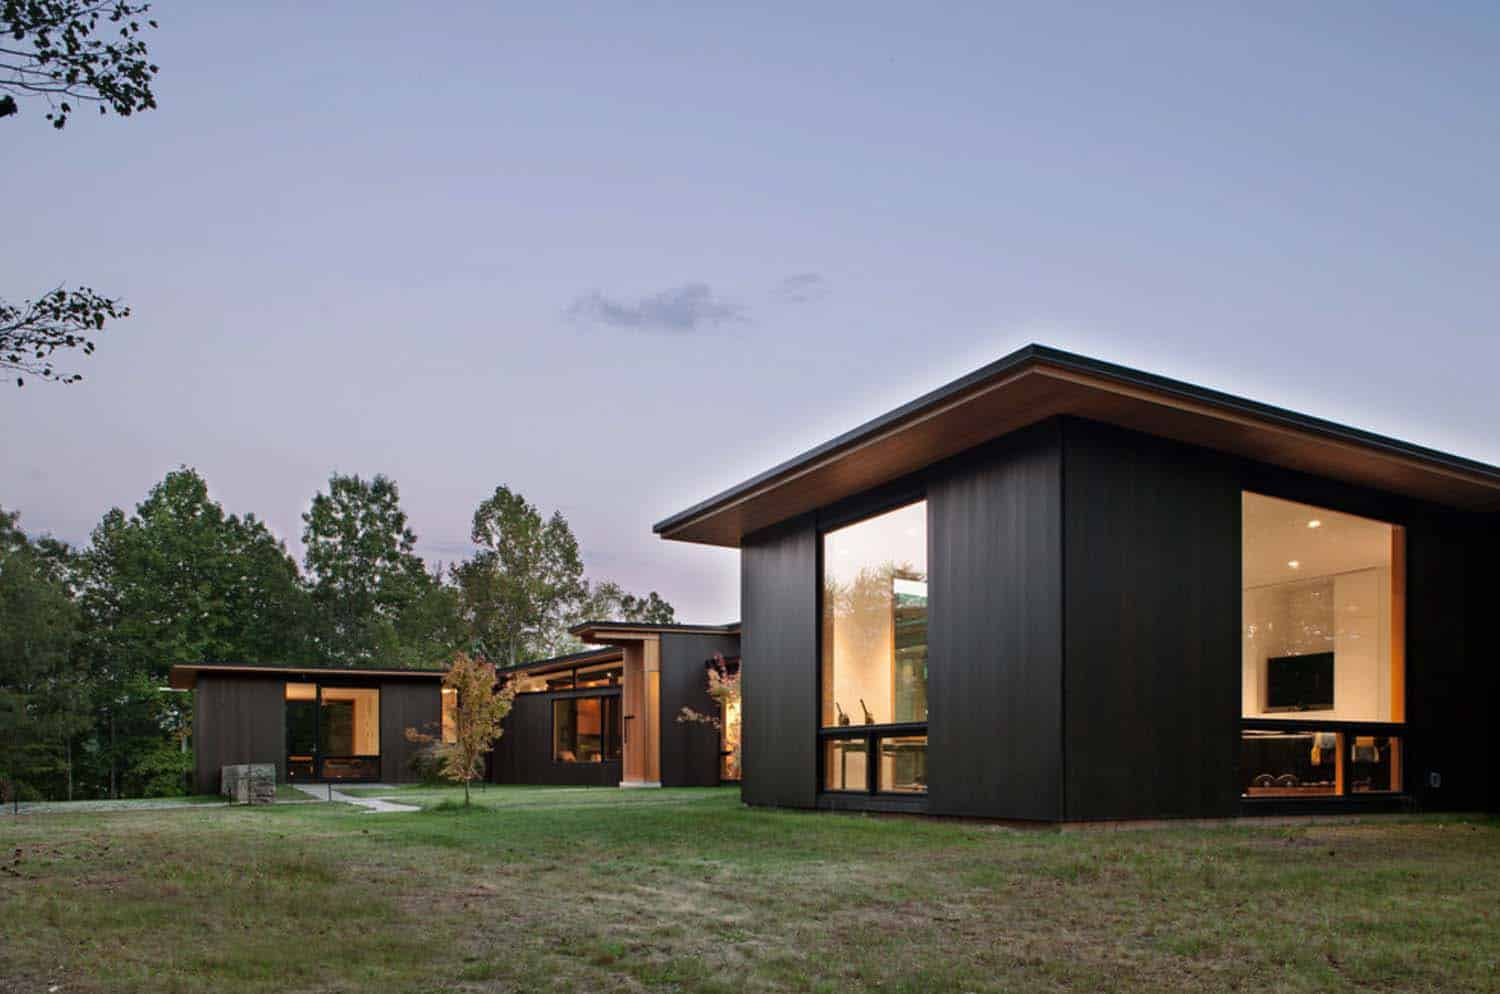 modern-lake-house-carlton-edwards-02-1-kindesign